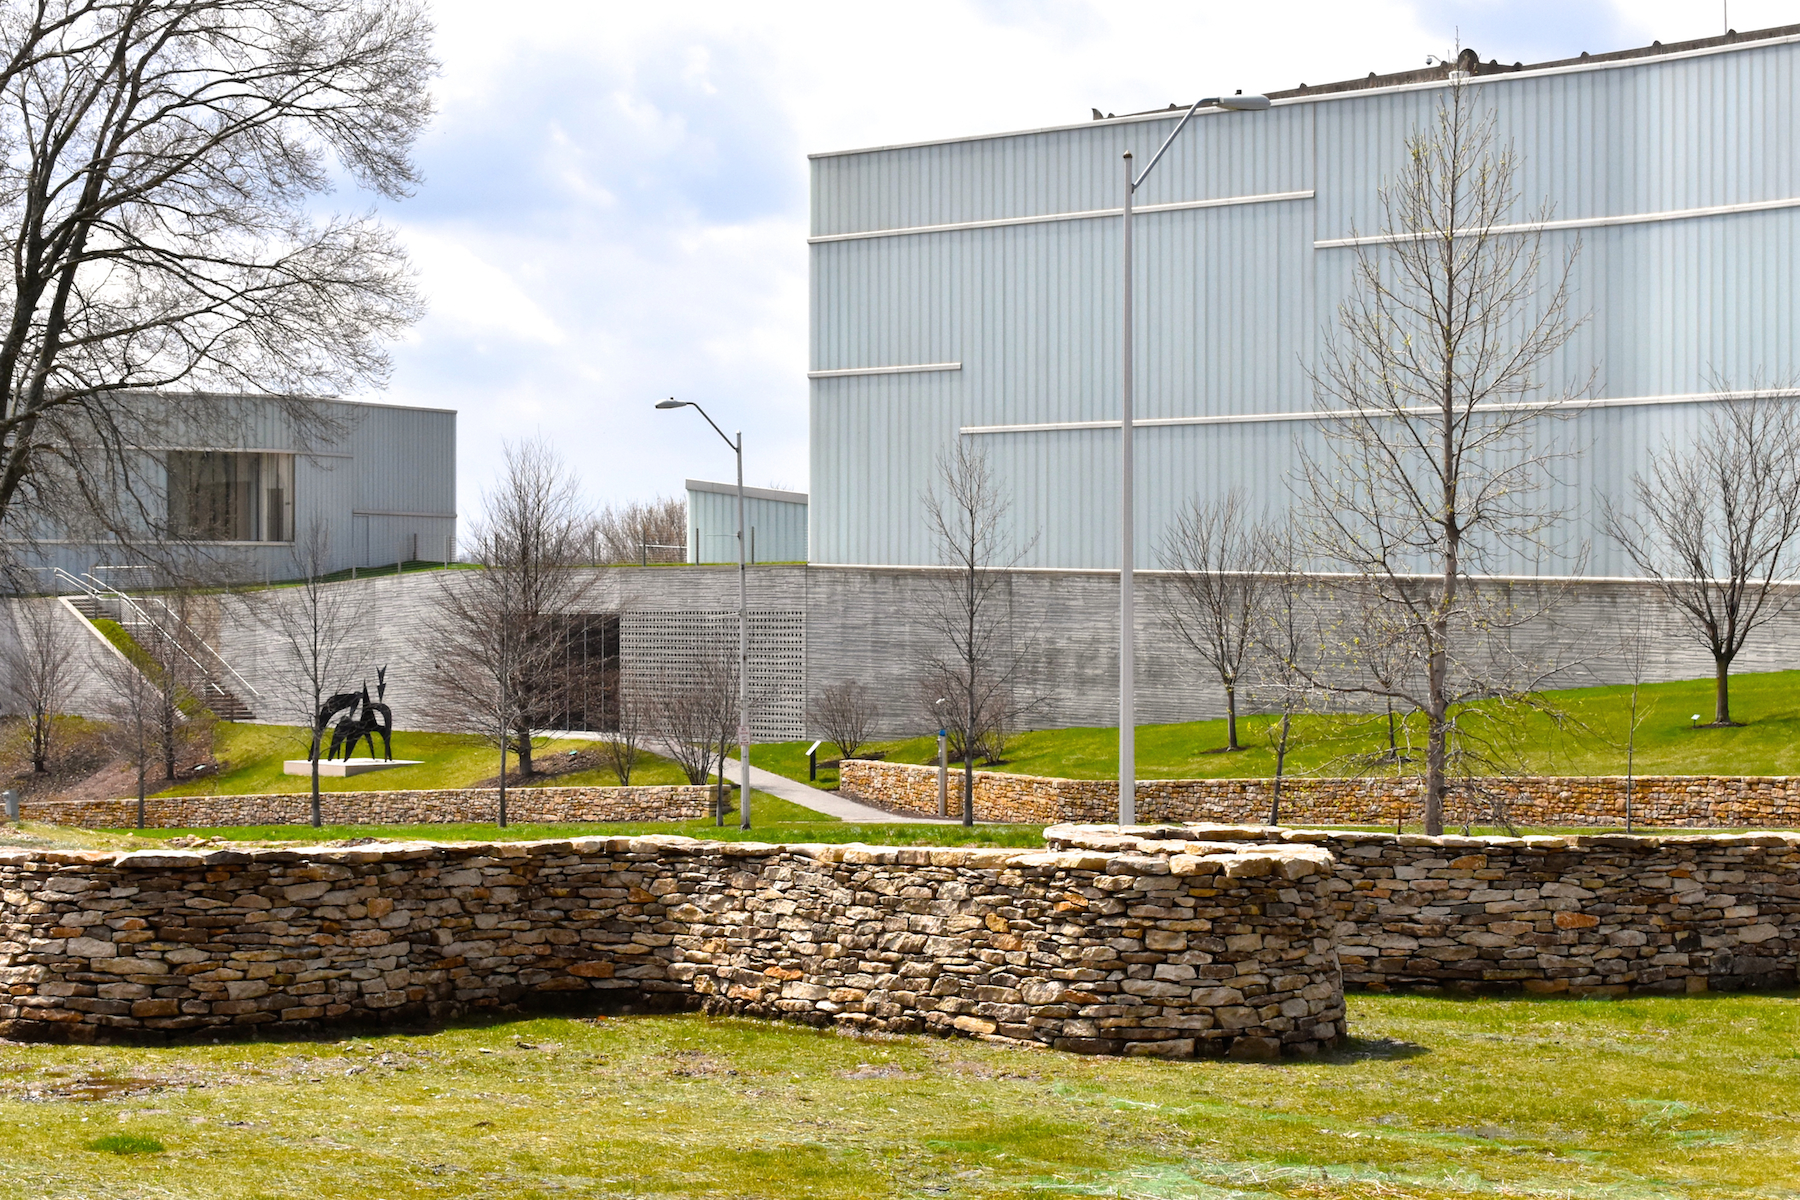 Goldsworthy's Walking Wall (first stage) and the Nelson Atkins Museum of Art Bloch Building.  [4.19. Photo: AG]